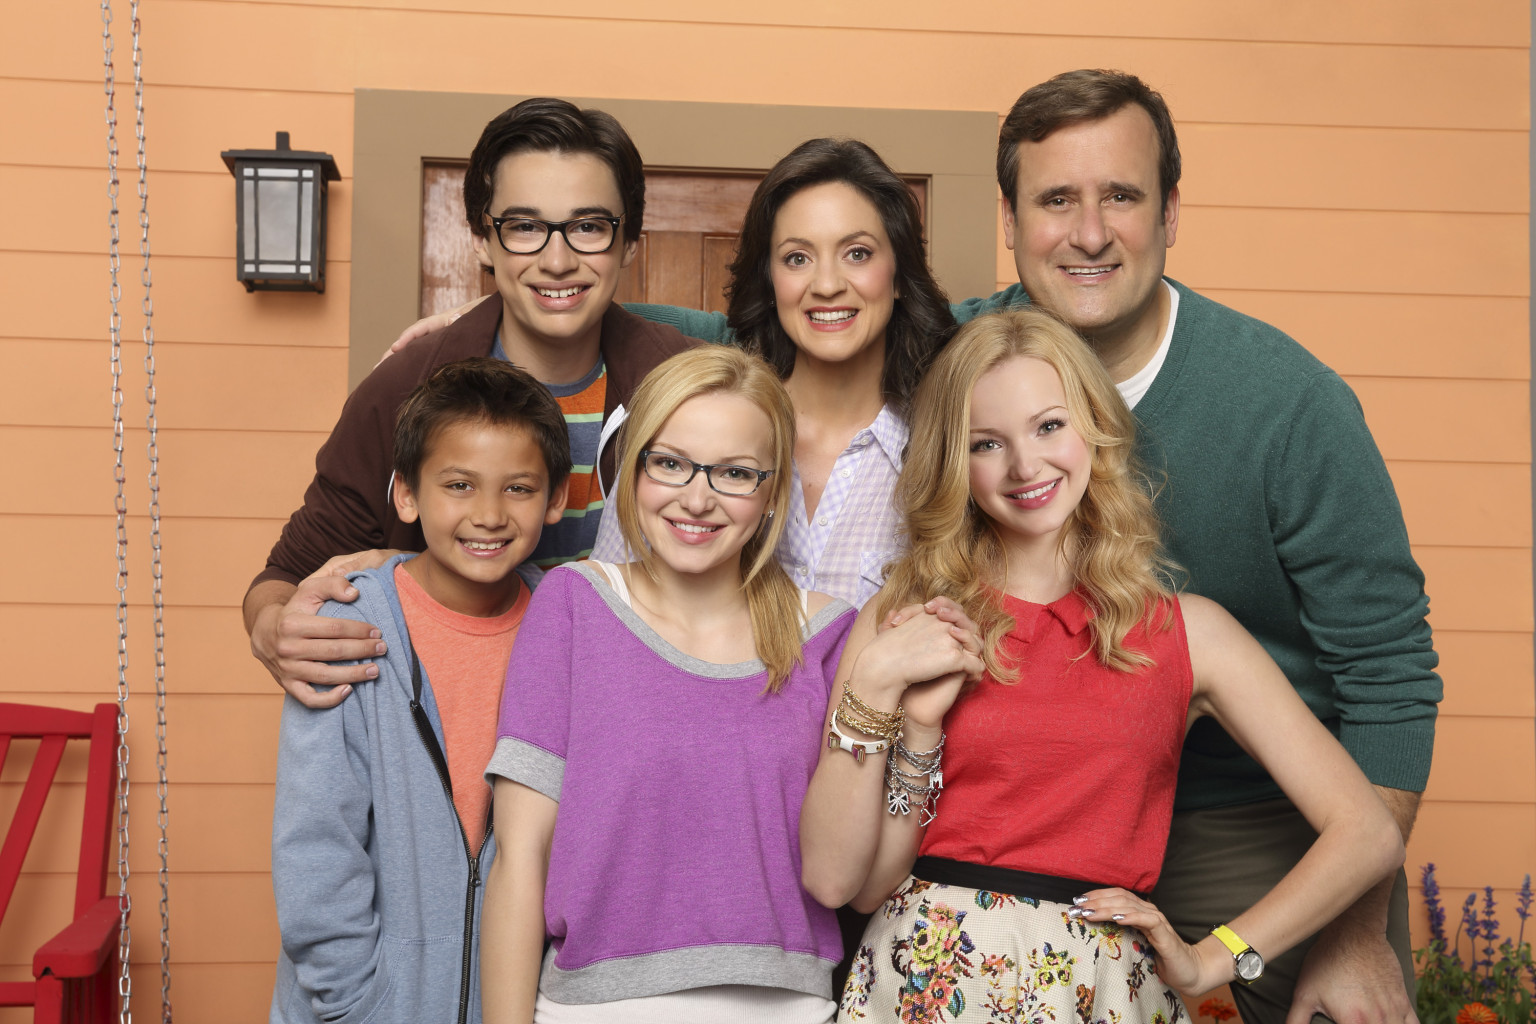 LIV-AND-MADDIE-facebook